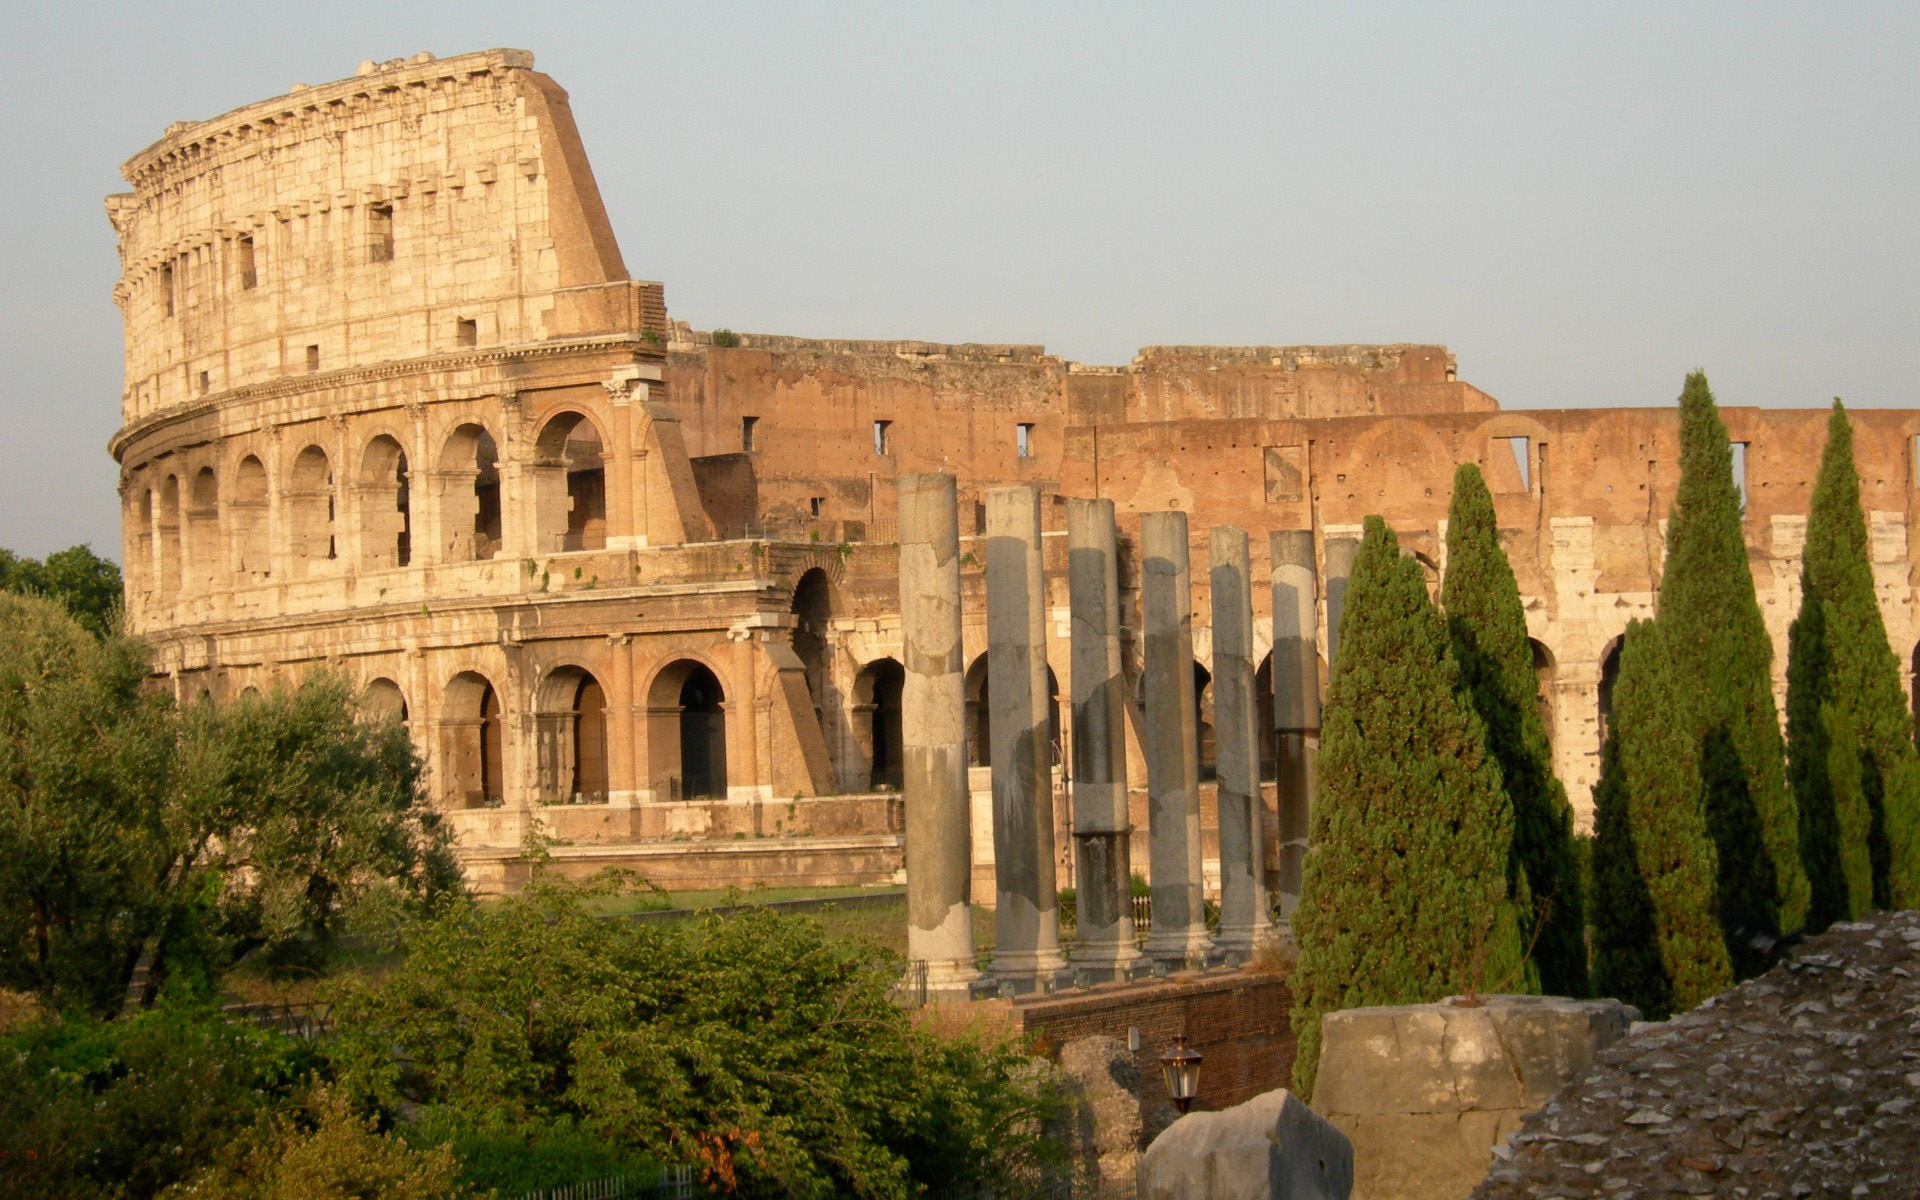 The Coliseum at Rome